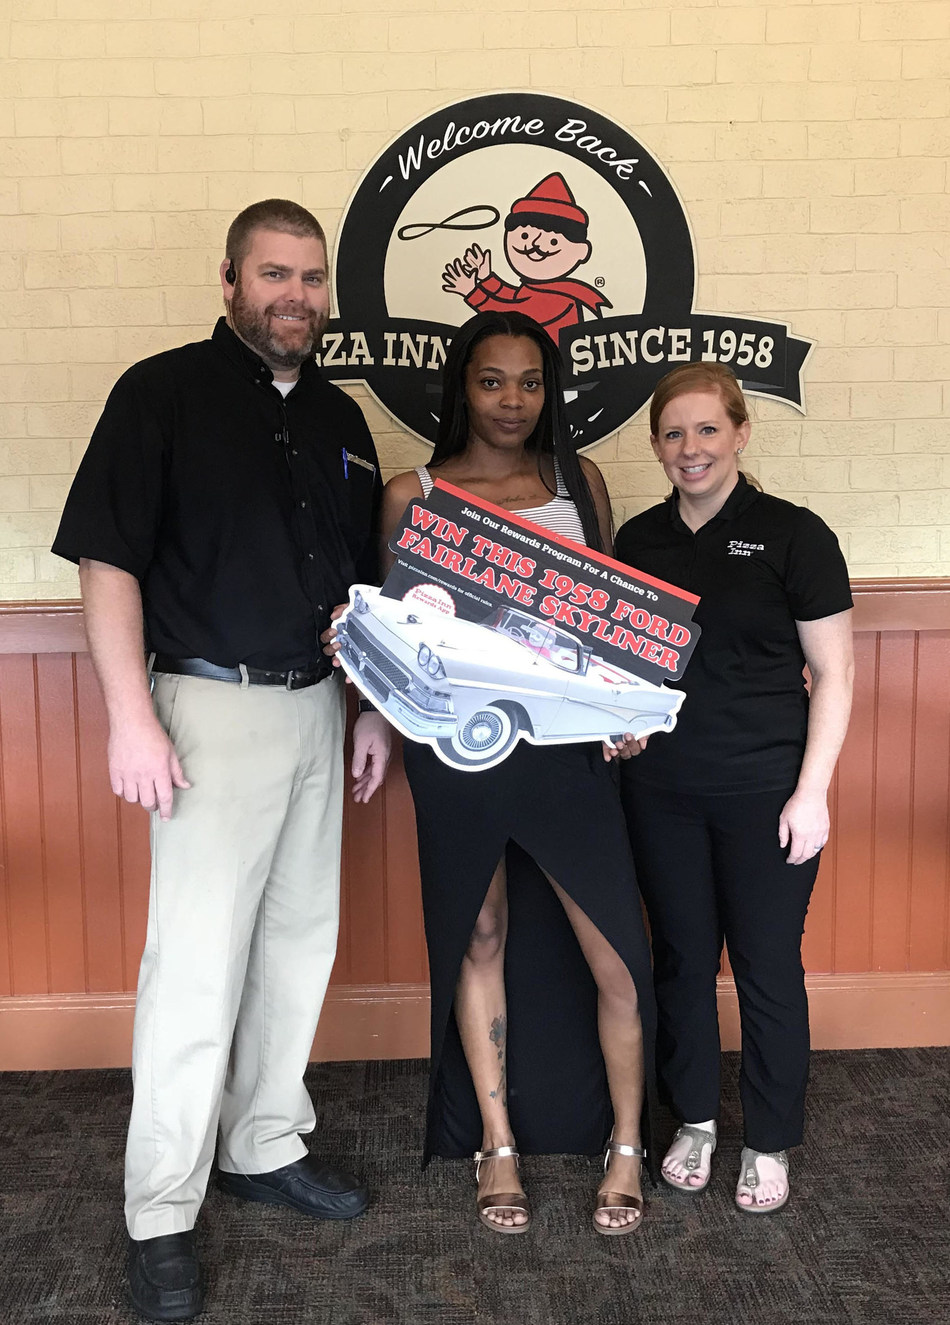 Brittany of Wilson, N.C. was the lucky winner of Pizza Inn's 60th Anniversary car tour sweepstakes. Pizza Inn started in 1958 when two Texas brothers opened the first Pizza Inn in Dallas.